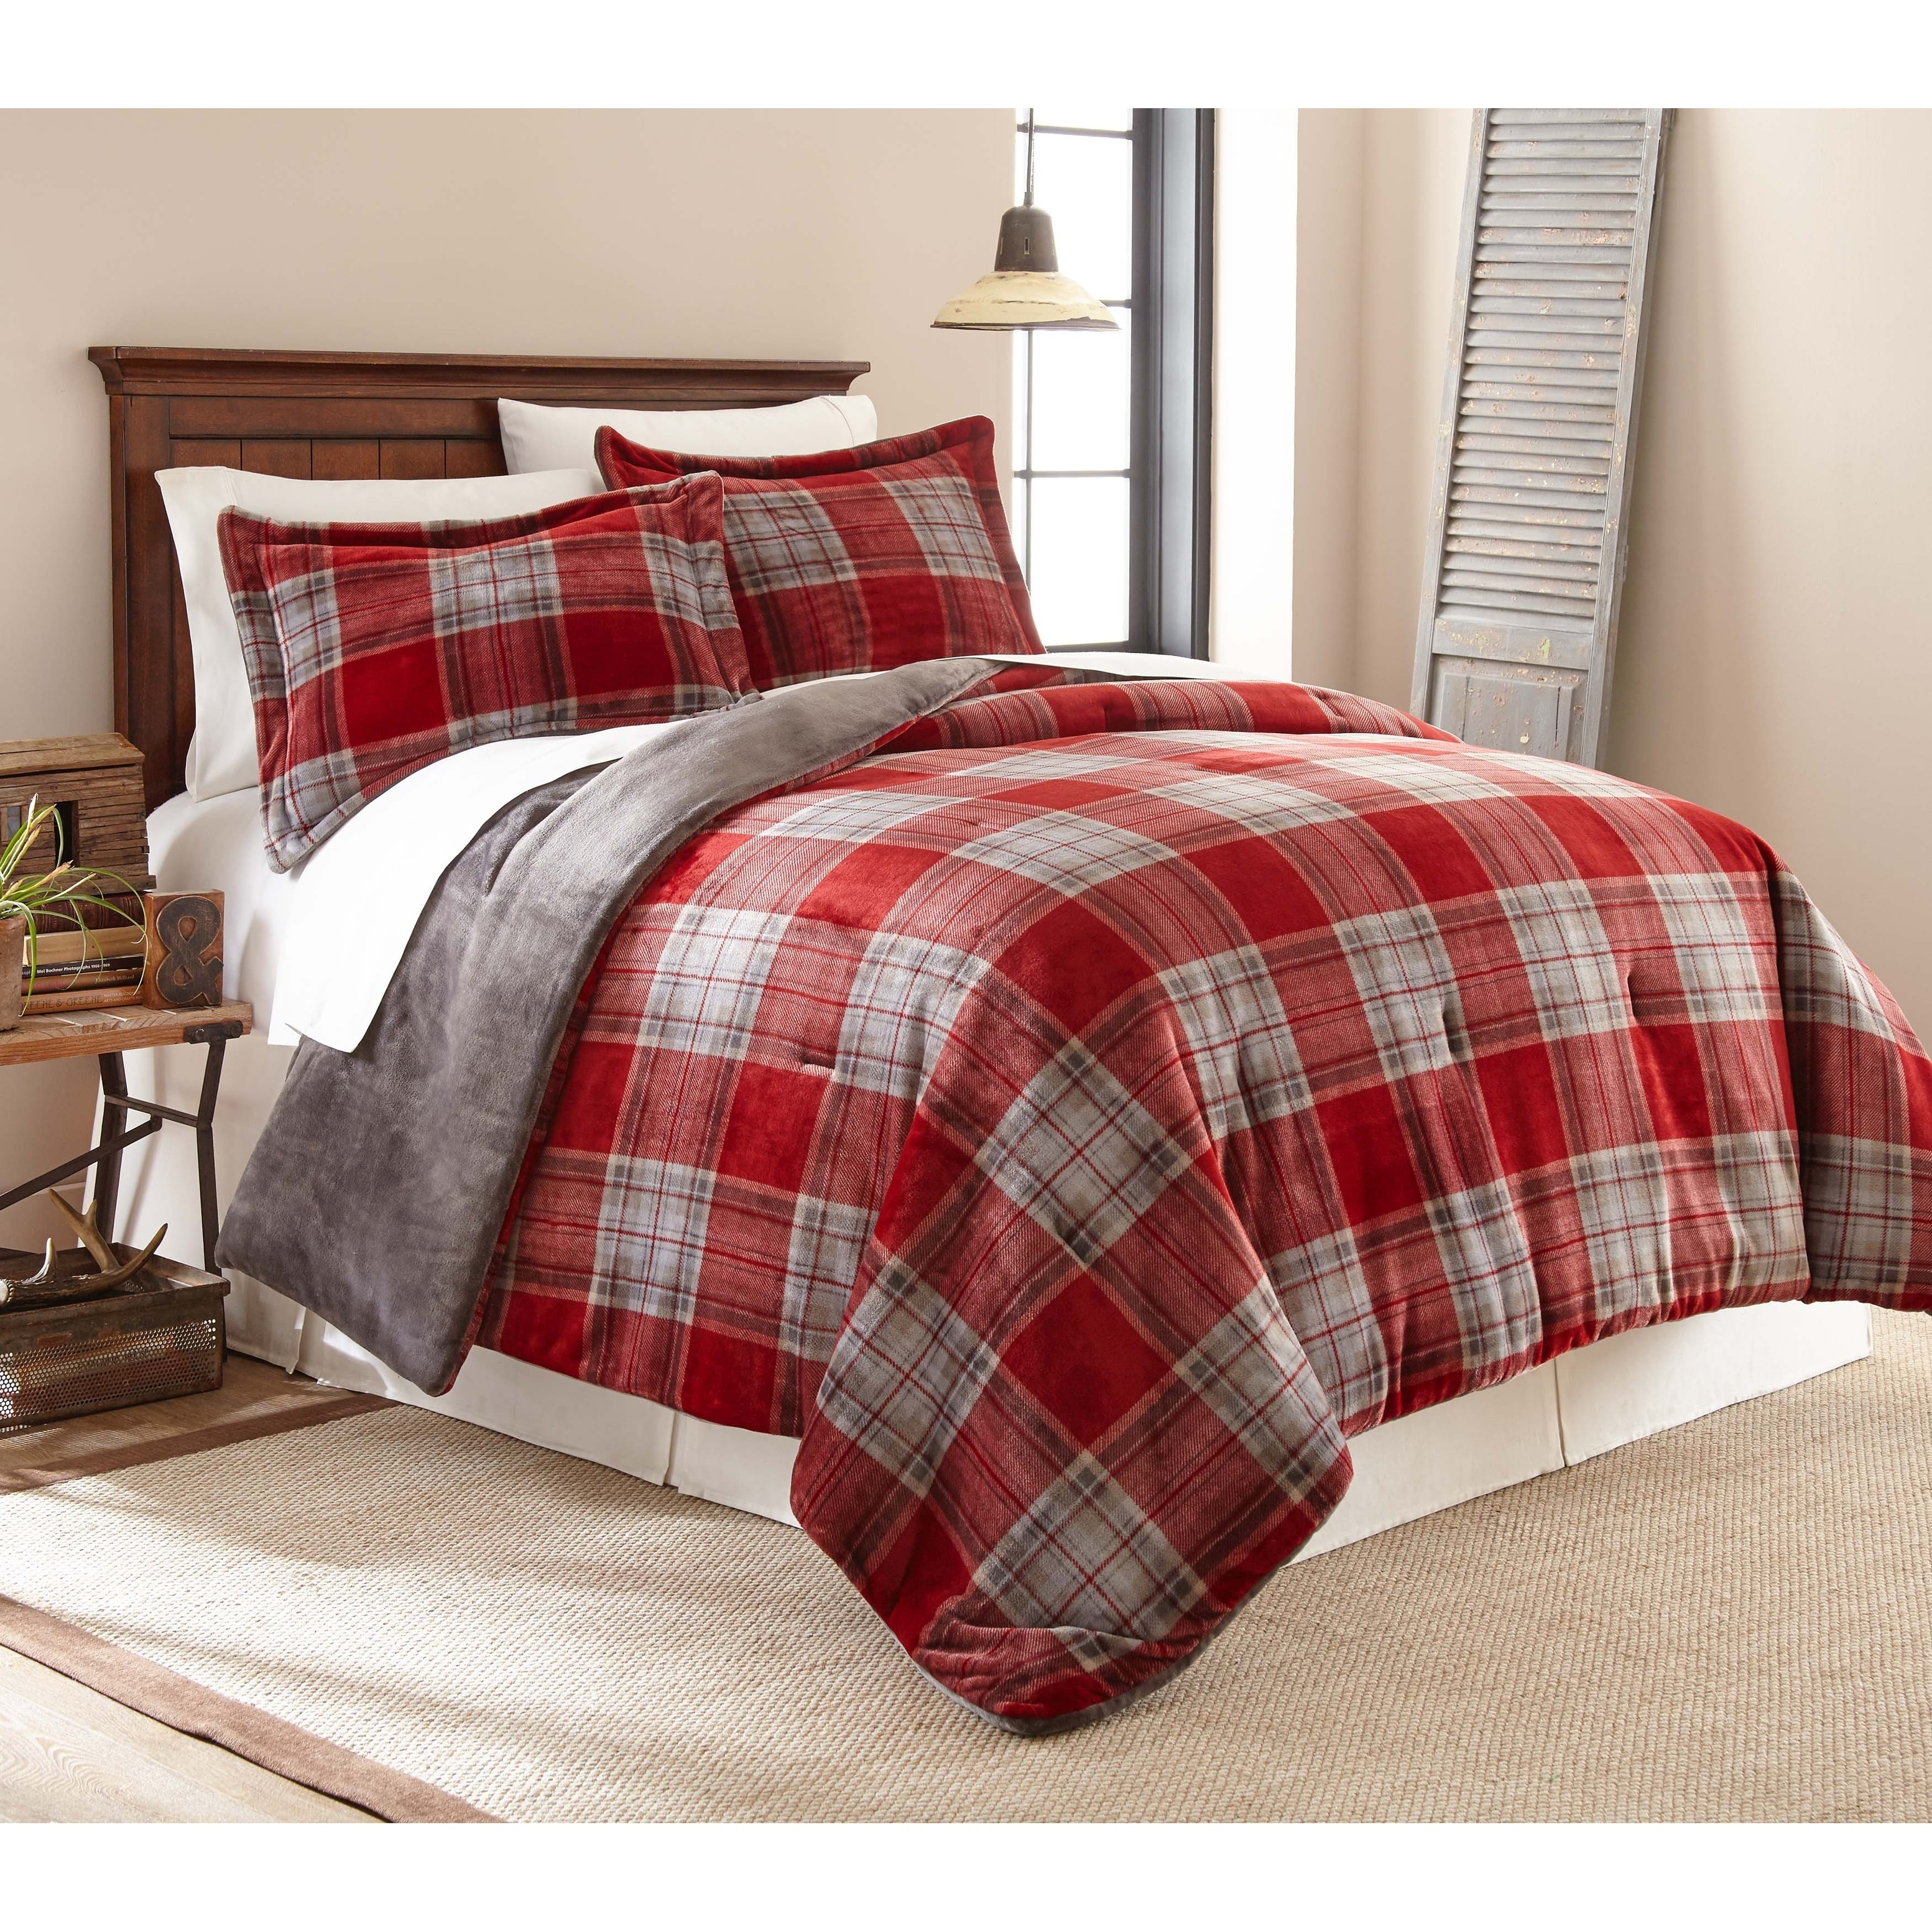 reviews nautica bed comforter wayfair set booker bath plaid pdx